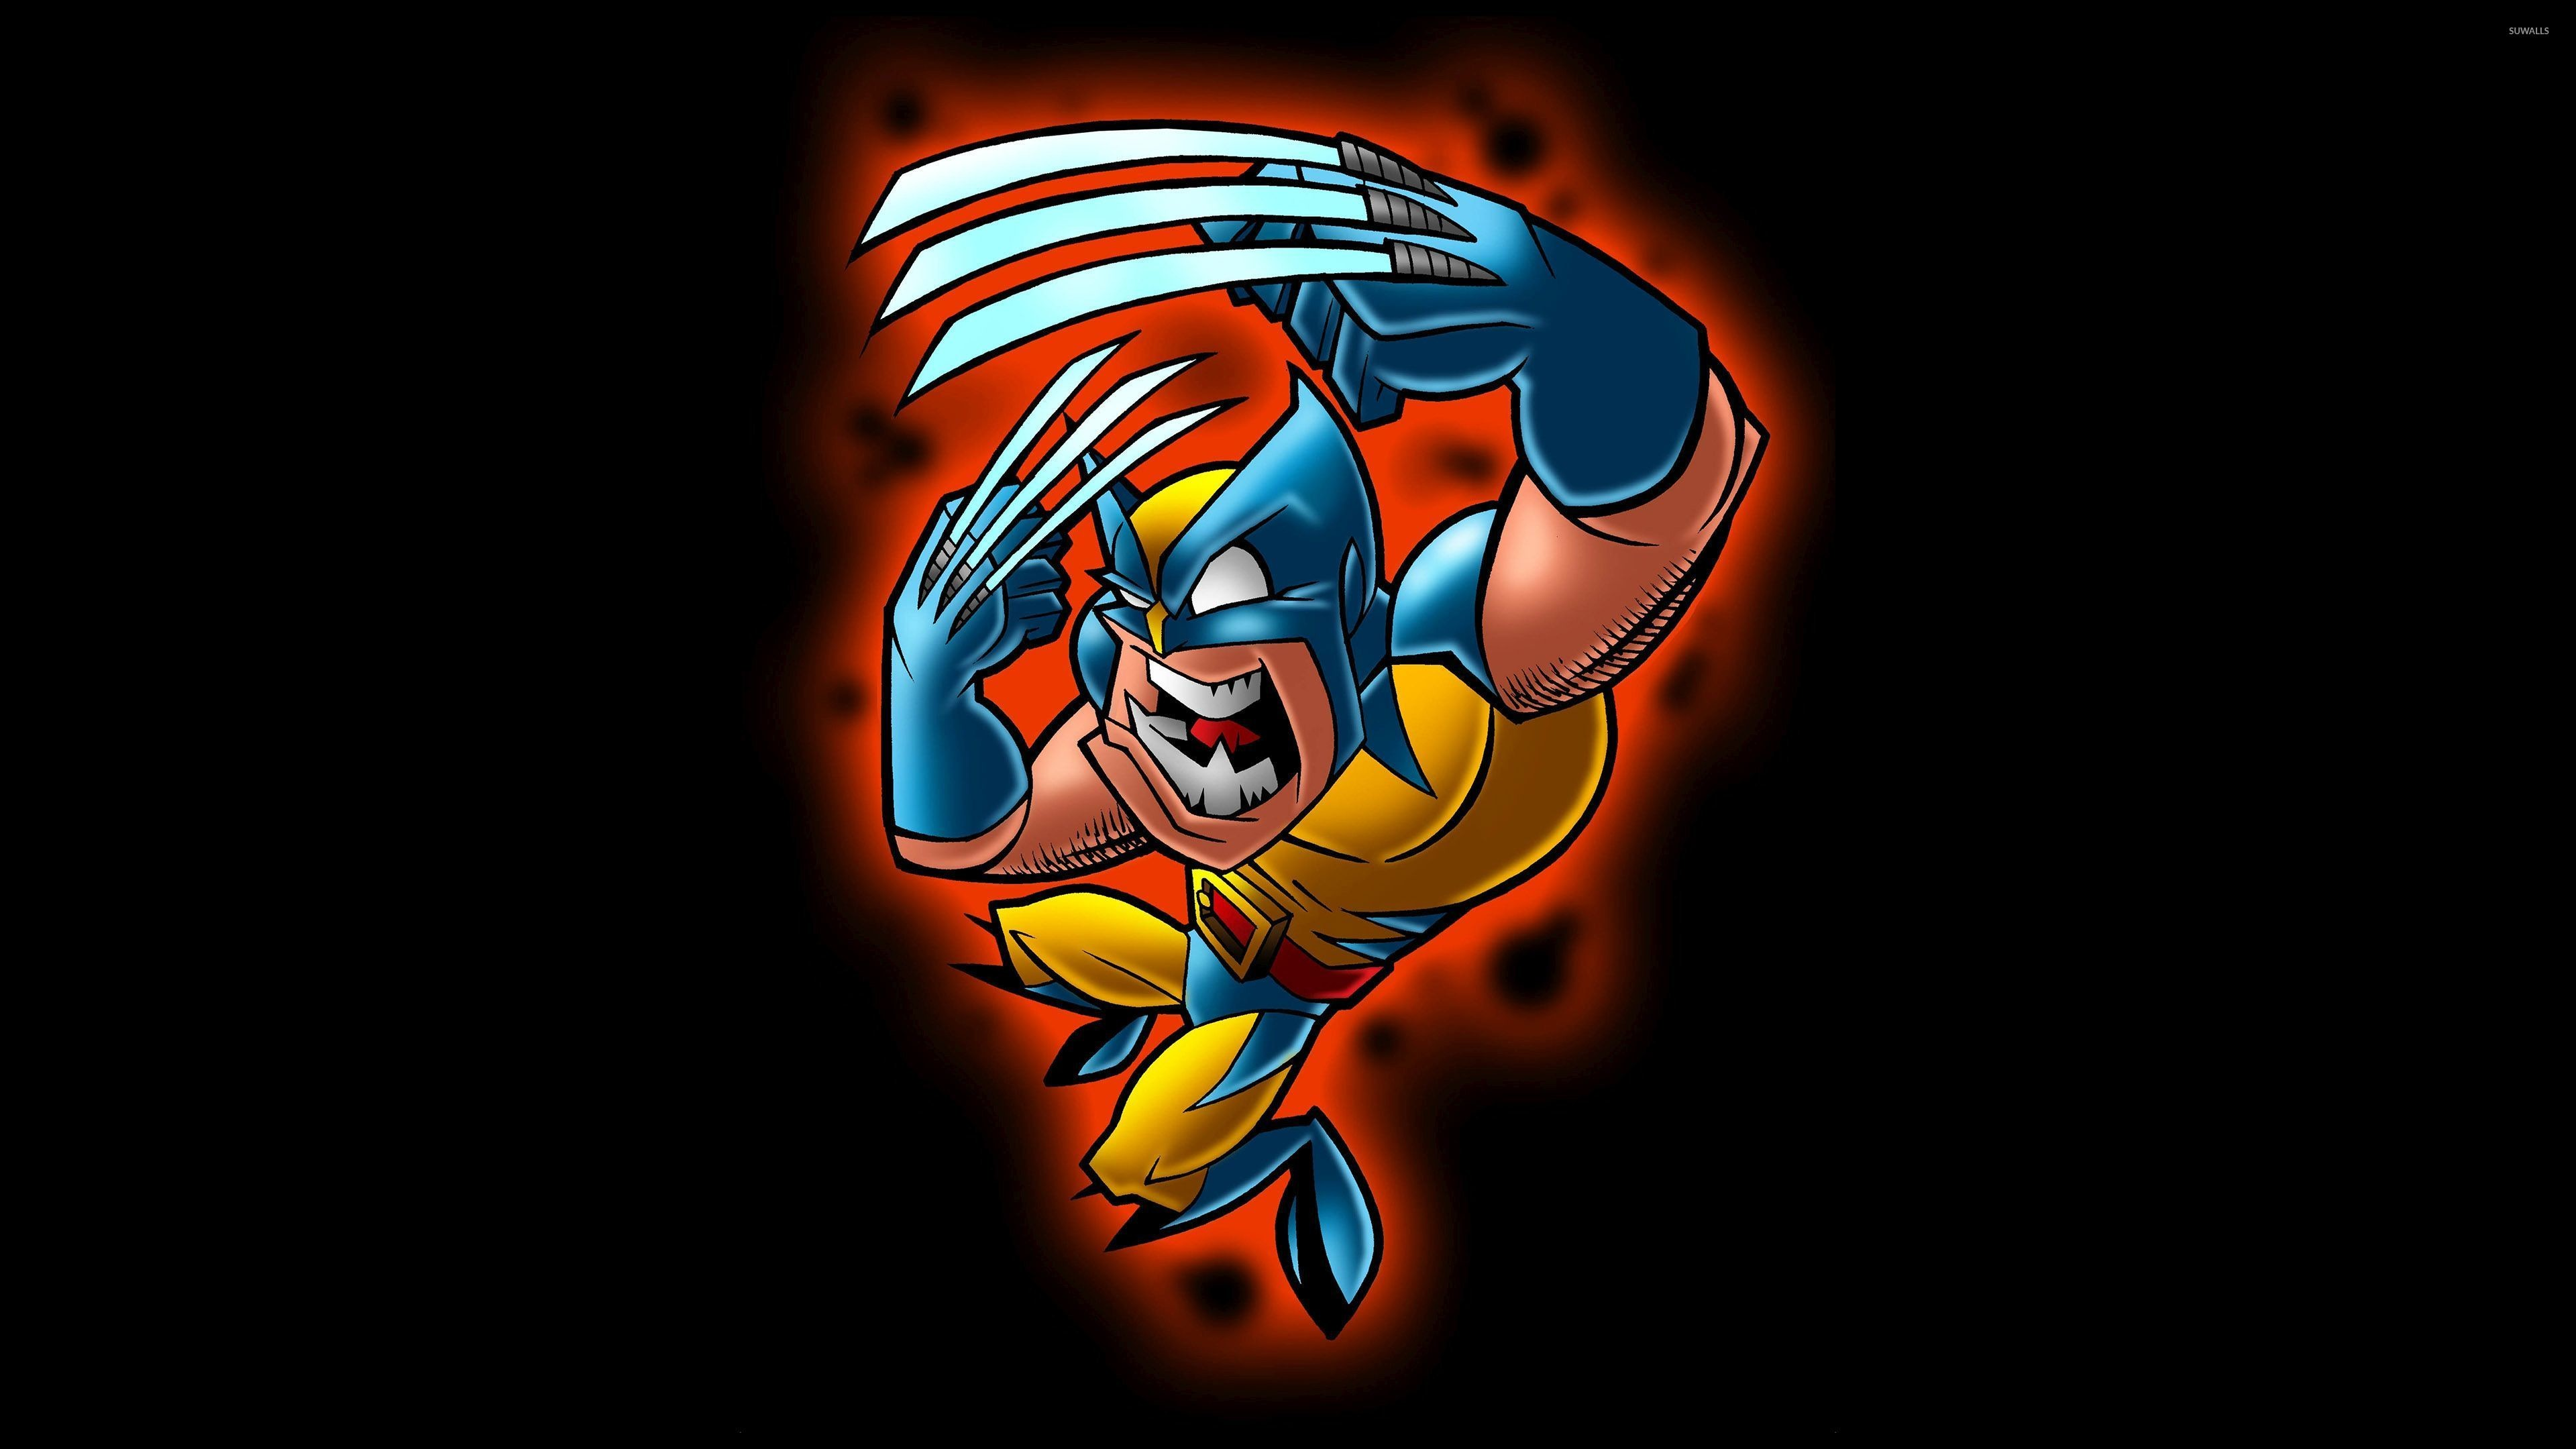 Res: 3840x2160, Funny Wolverine wallpaper